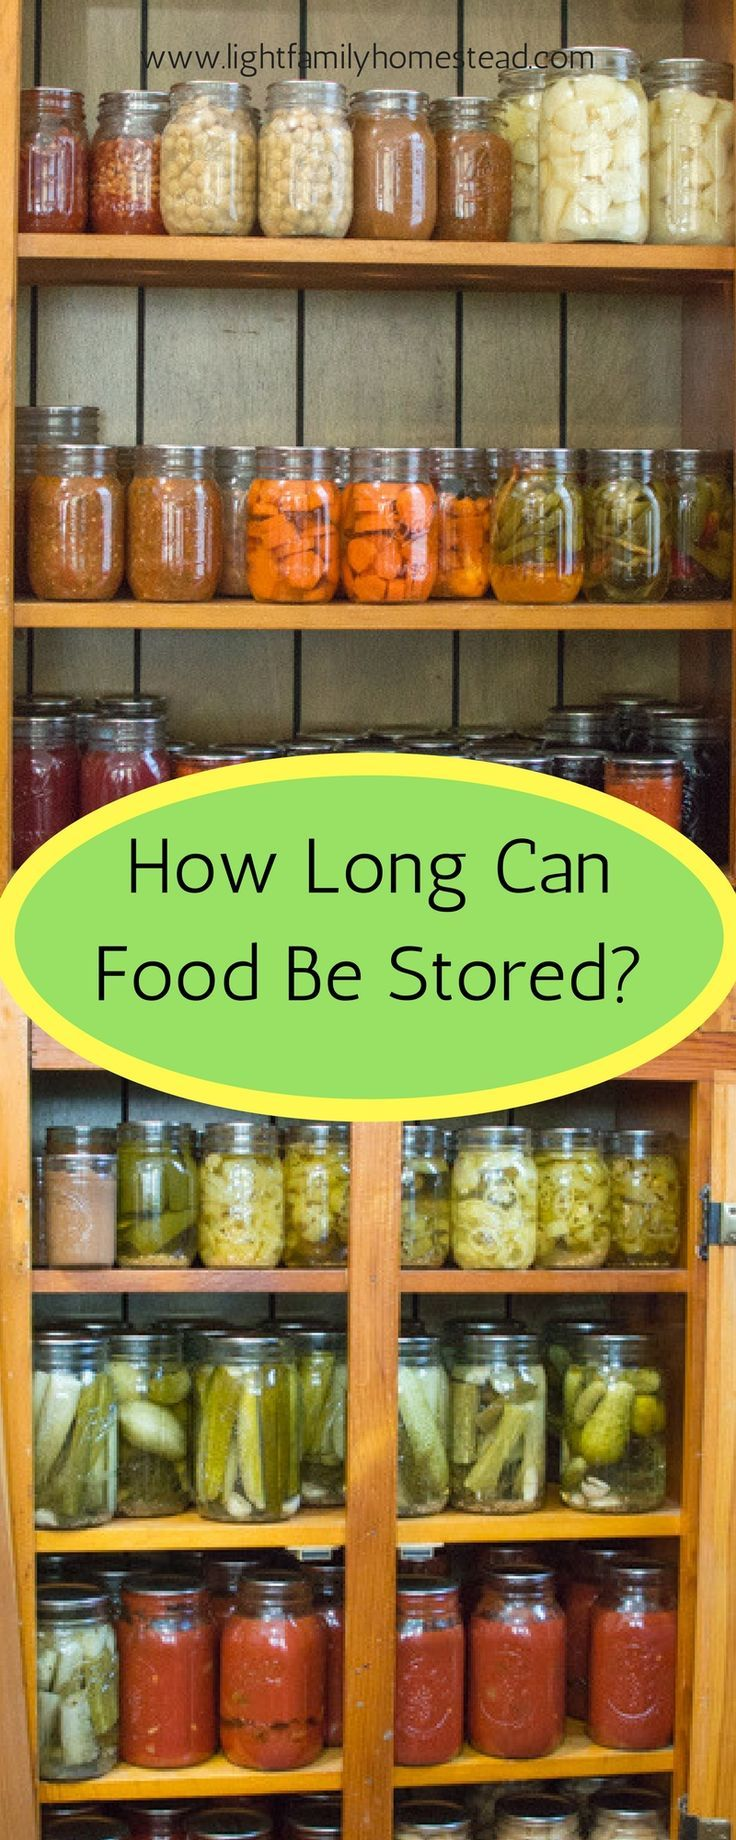 How Long Can Food Be Stored? | Posted by: SurvivalofthePrepped.com